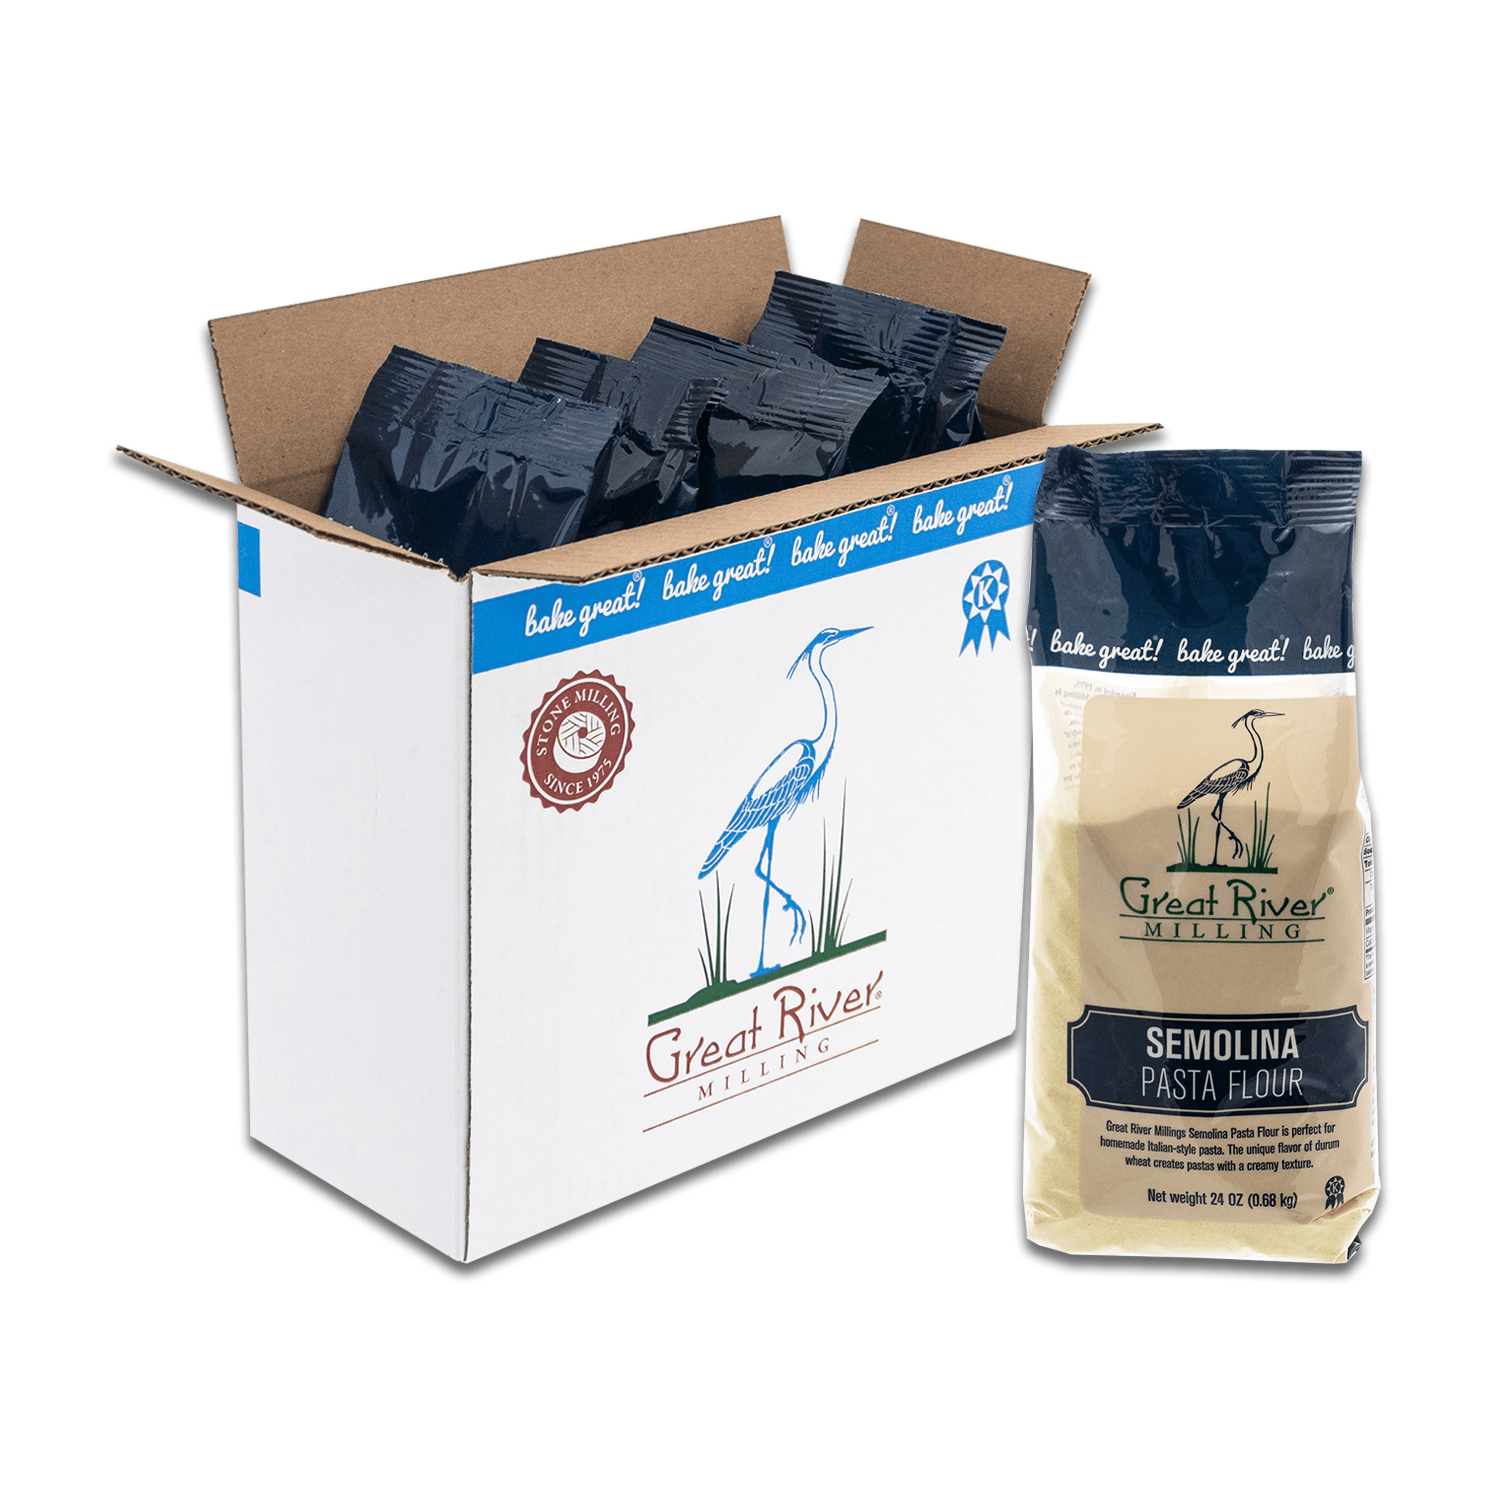 Great River Milling Semolina Pasta Flour Case Open